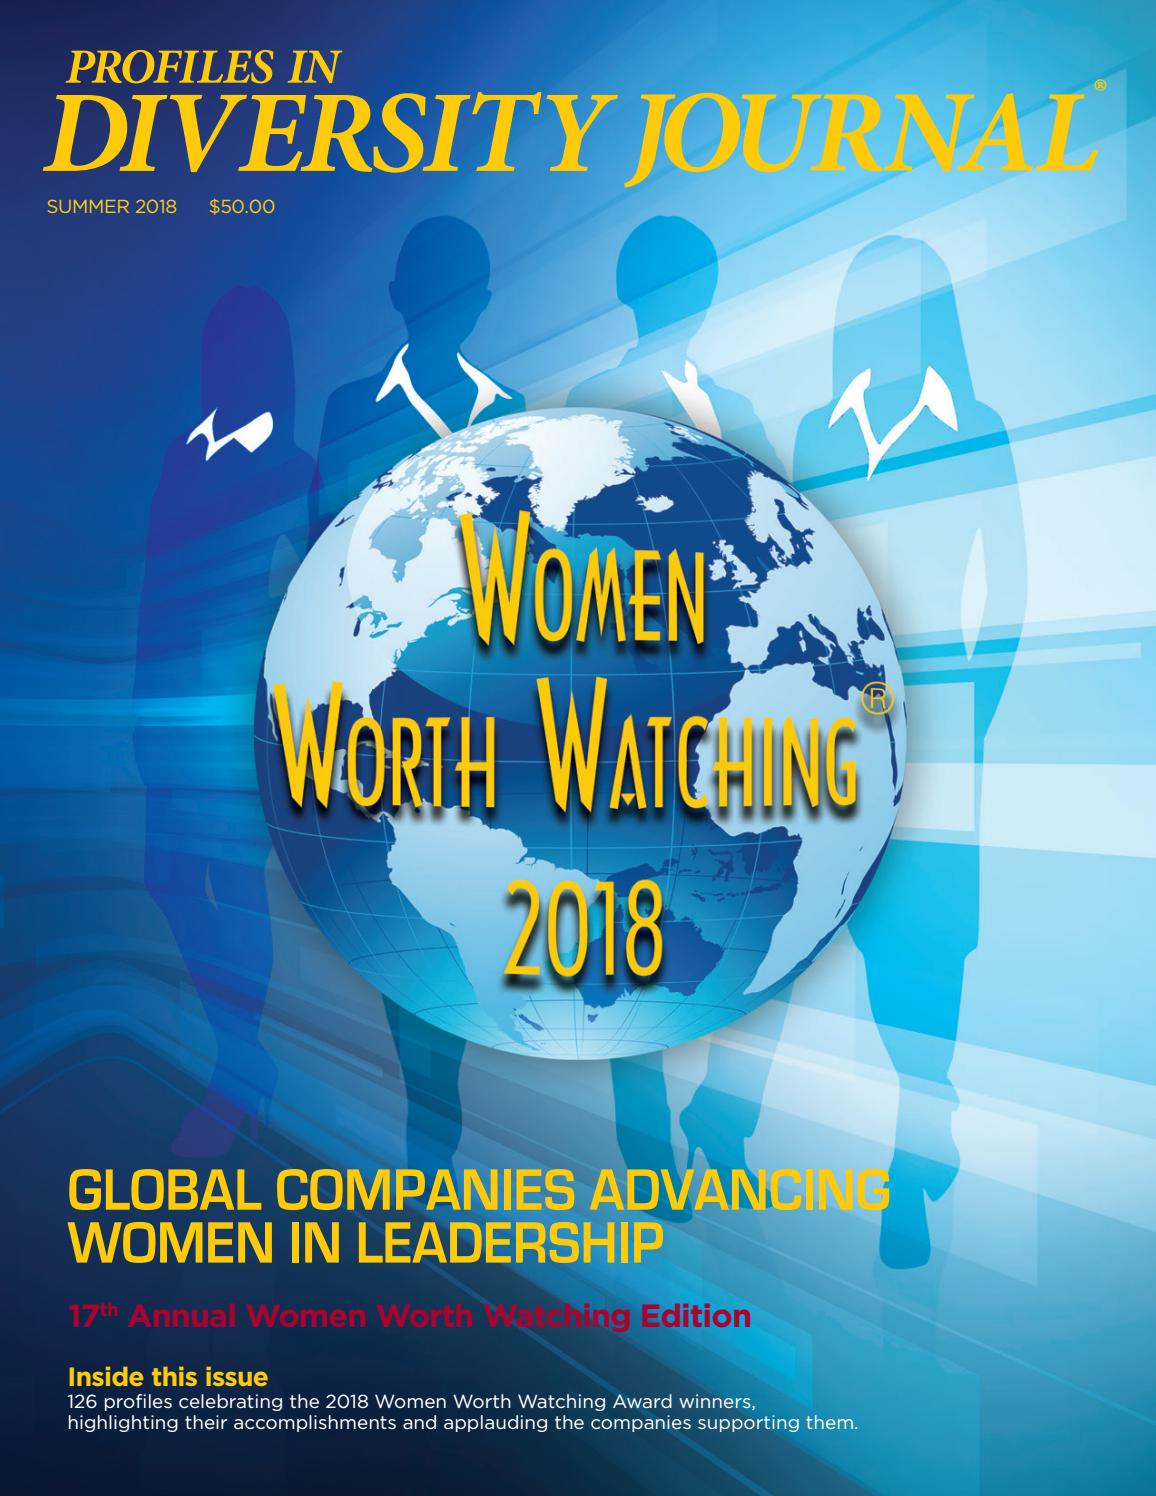 Diversity Journal - Summer 2018 - Women Worth Watching by